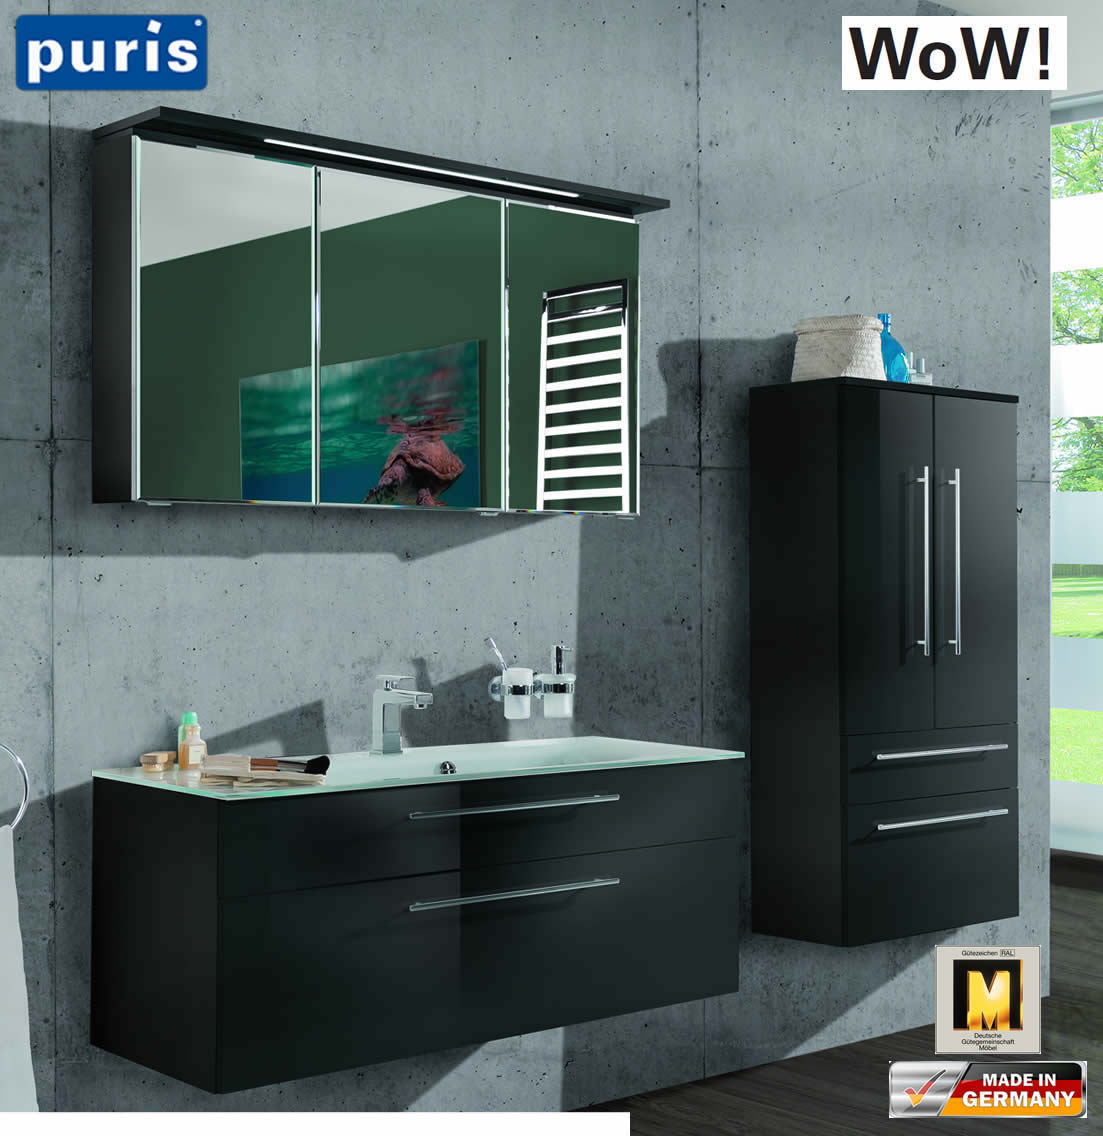 Puris WoW Badmöbel Set 110 cm in Anthrazit - 3tlg - mit ...